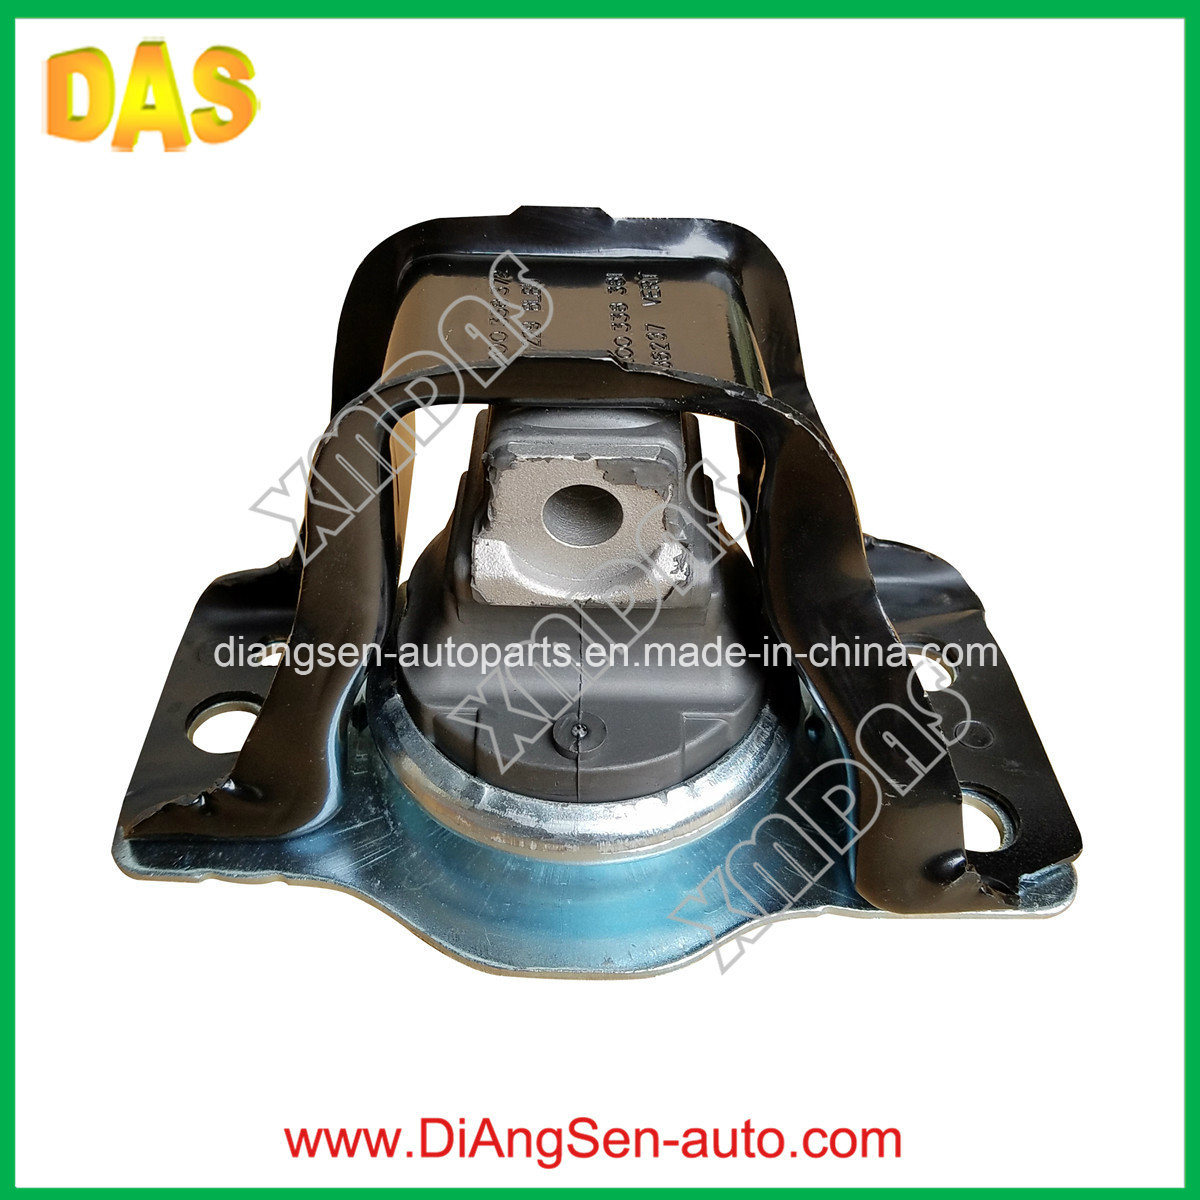 China Car Chasis Parts Engine Mount For Renault Megane 8200338381 2009 Honda Ridgeline Suspension Control Arm Front Right Lower W0133 Auto